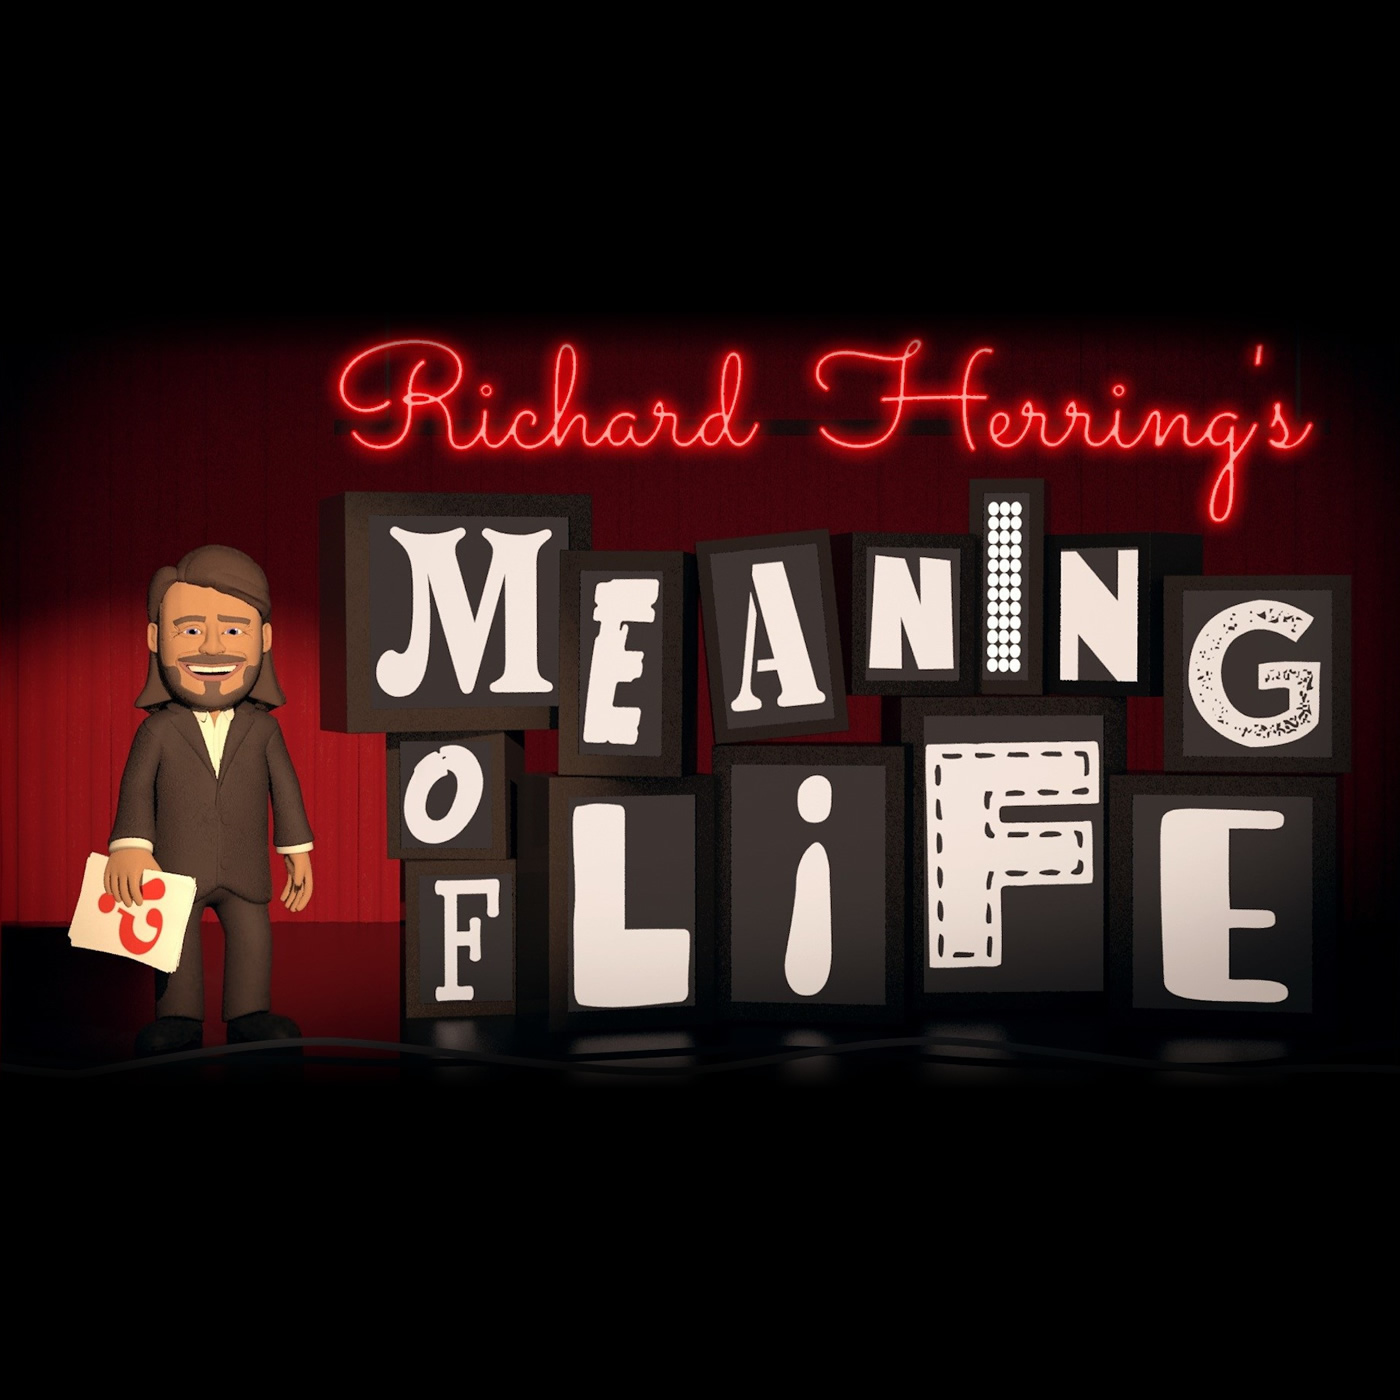 Richard Herring's Meaning Of Life